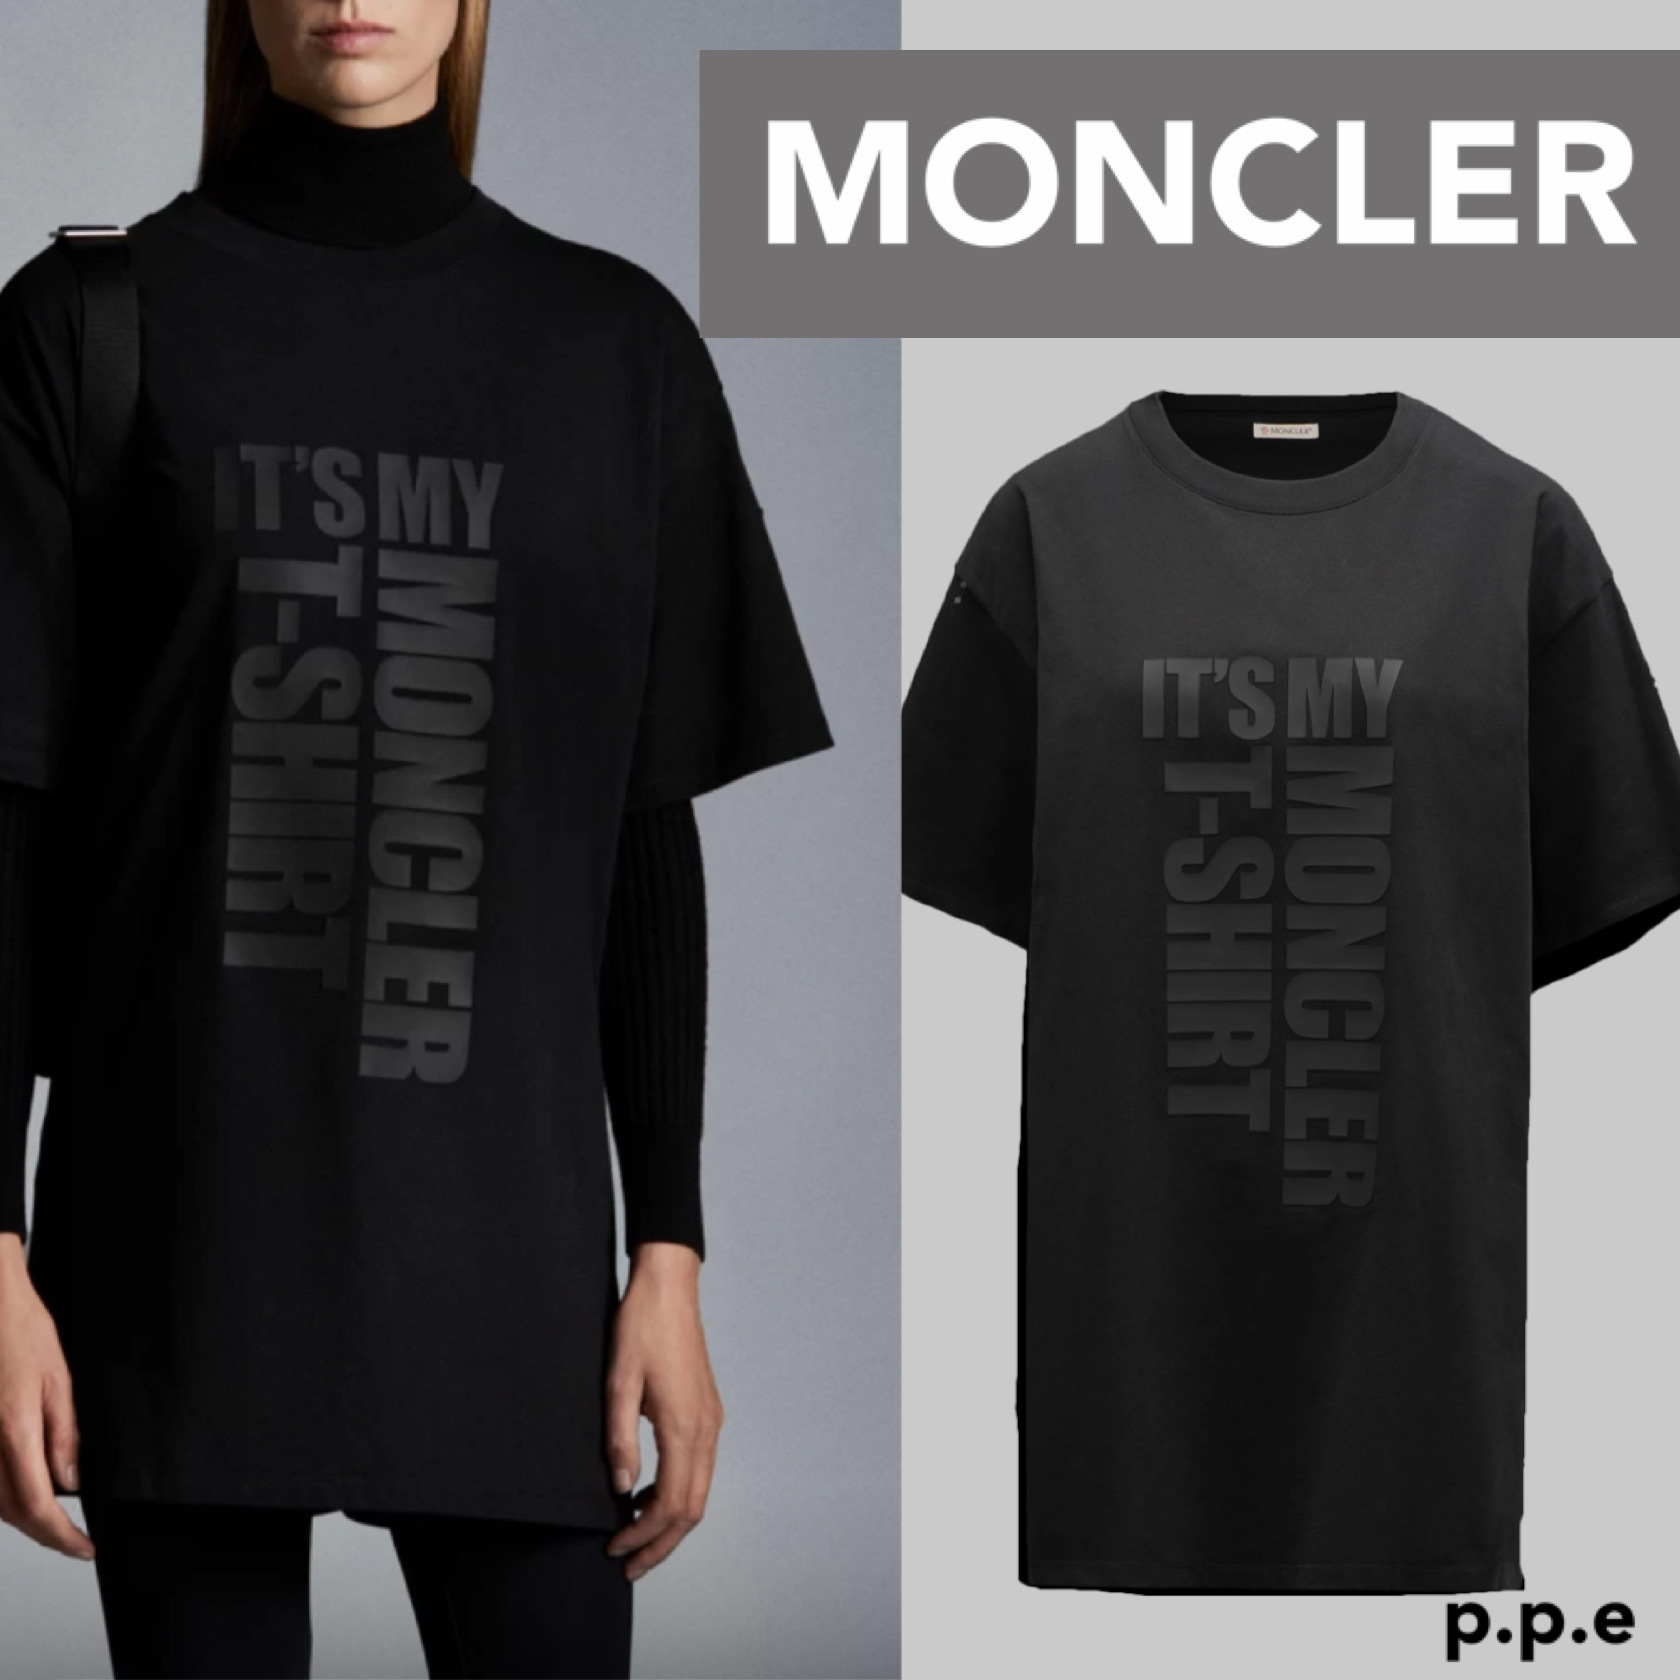 * MONCLER * モンクレール T-shirt with graphic (MONCLER/Tシャツ・カットソー) G10938C7A210829HP